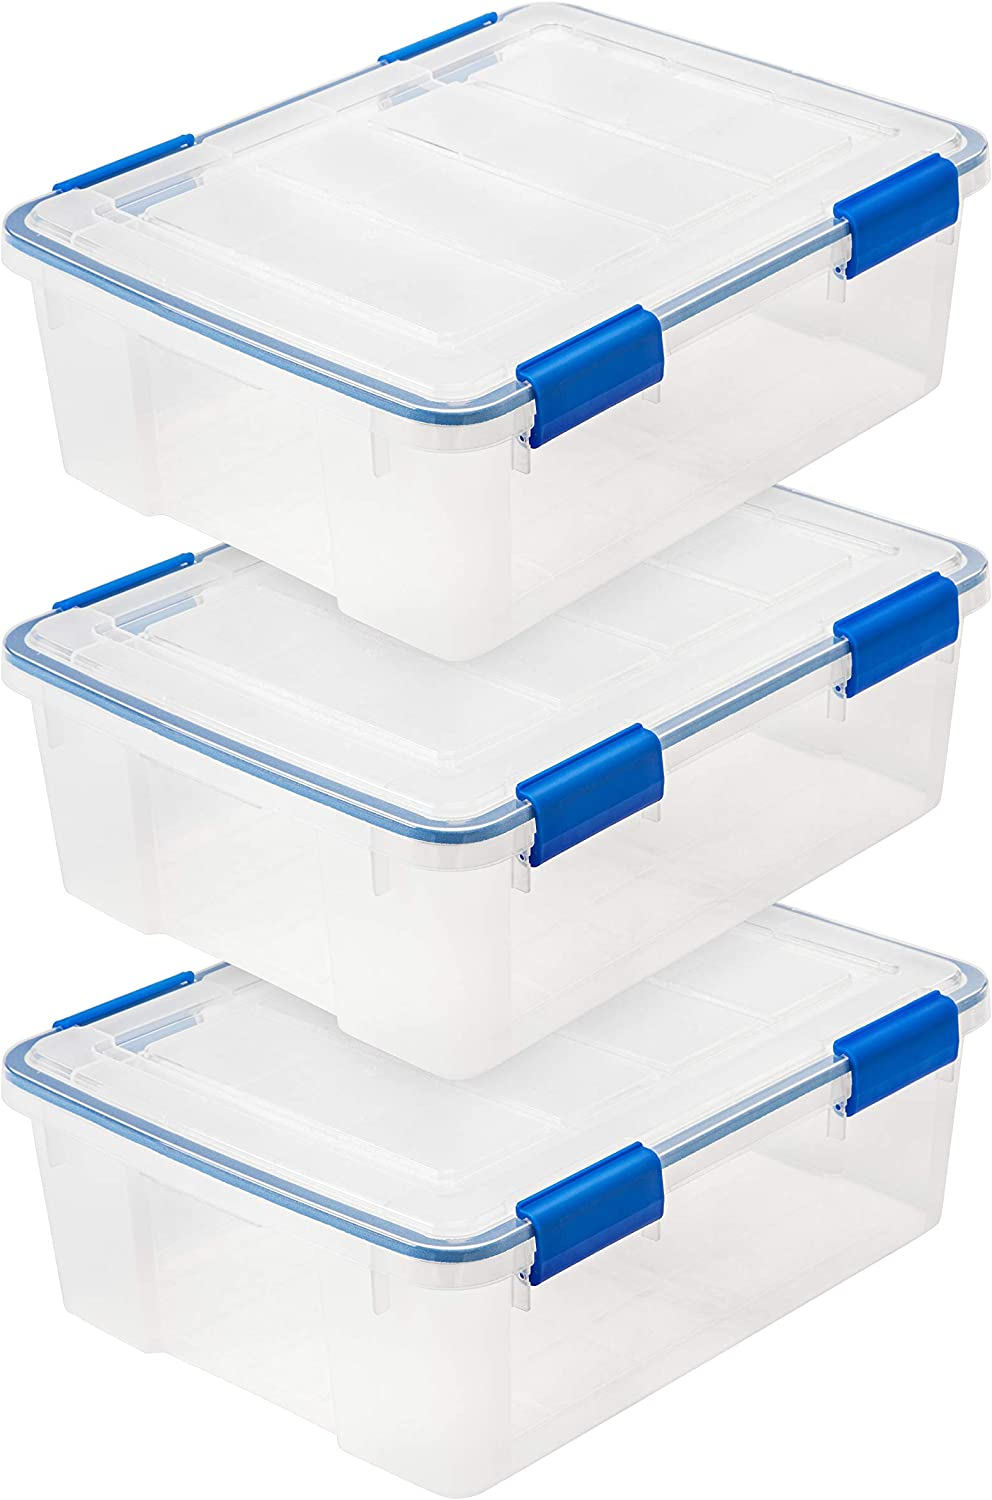 IRIS USA, Inc. WSB Air Waterproof/Weather Tight Plastic Storage Bin Tote Organizing Container with Durable Lid and Seal and Secure Latching, 26.5 Quart, Clear with Blue Buckles, 3 Count